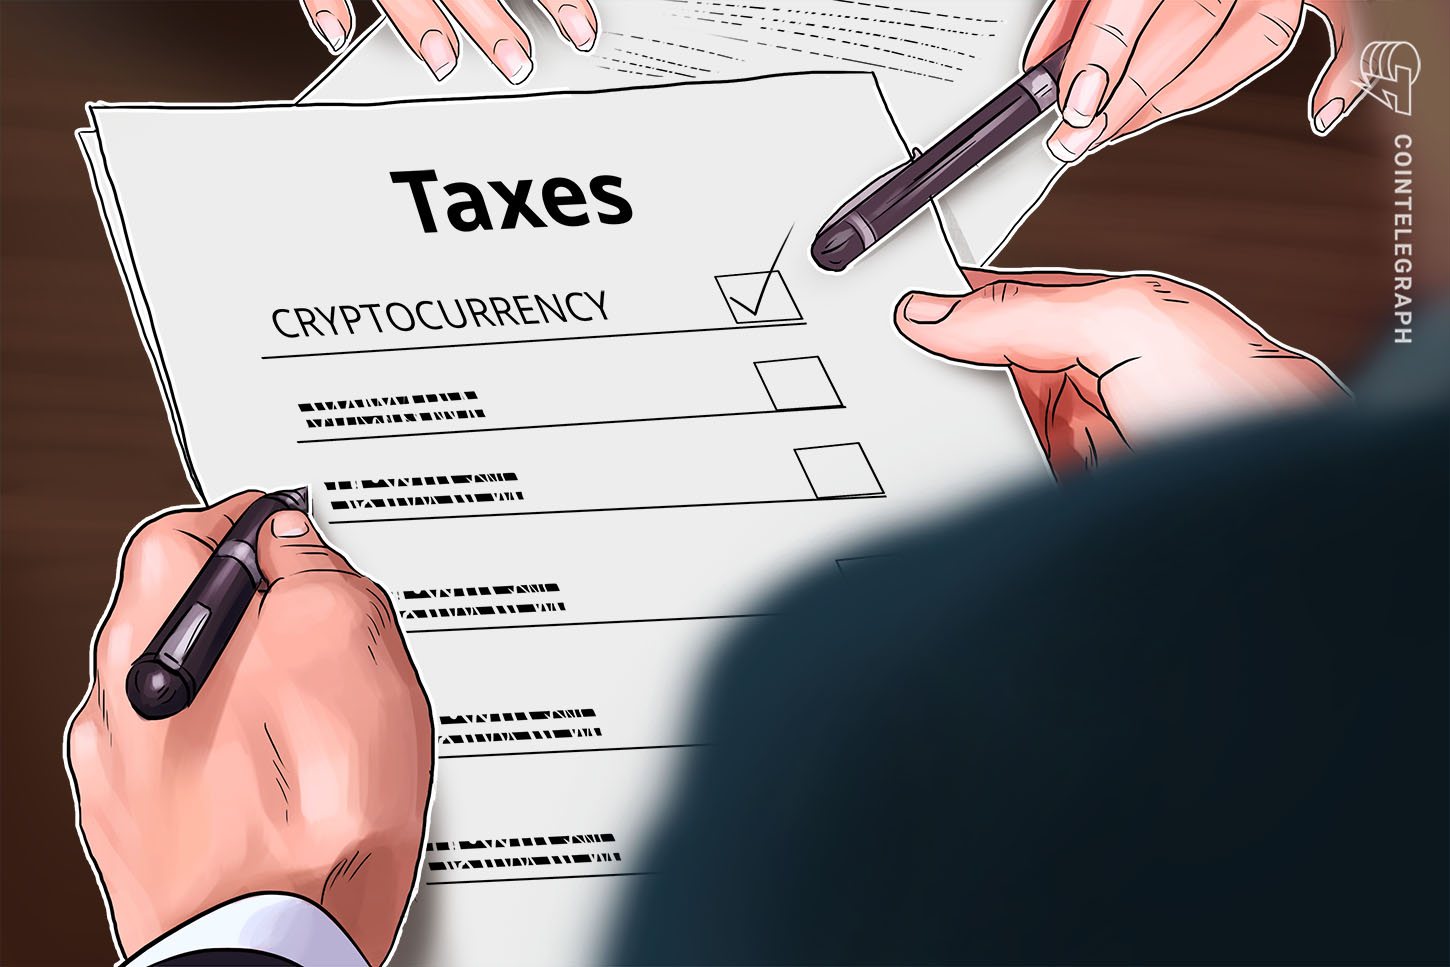 cryptocurrency 2021 taxes